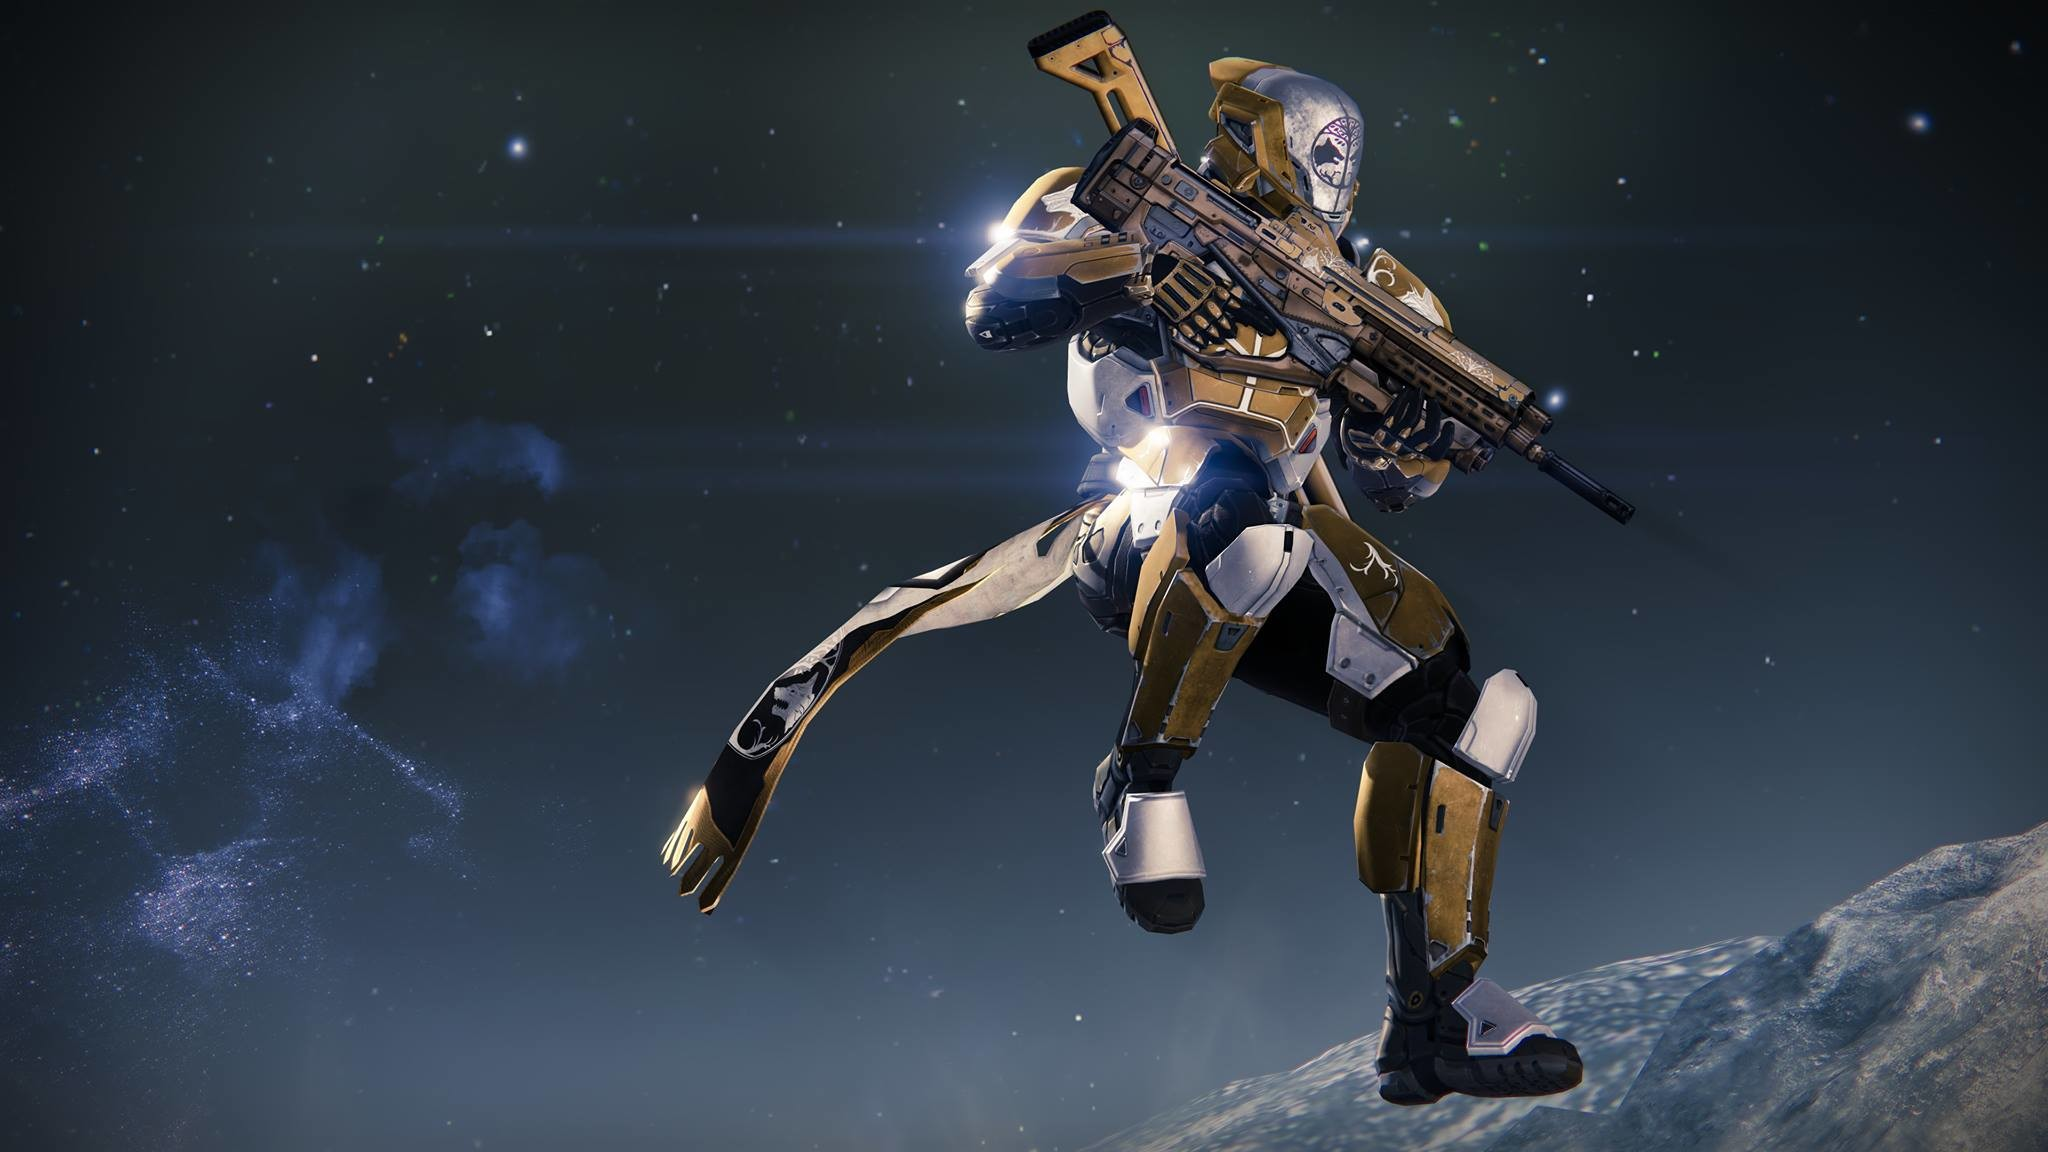 Games Backgrounds In High Quality: Destiny HD by Slavasan Lynam Destiny  Wallpaper Hd Wallpapers)